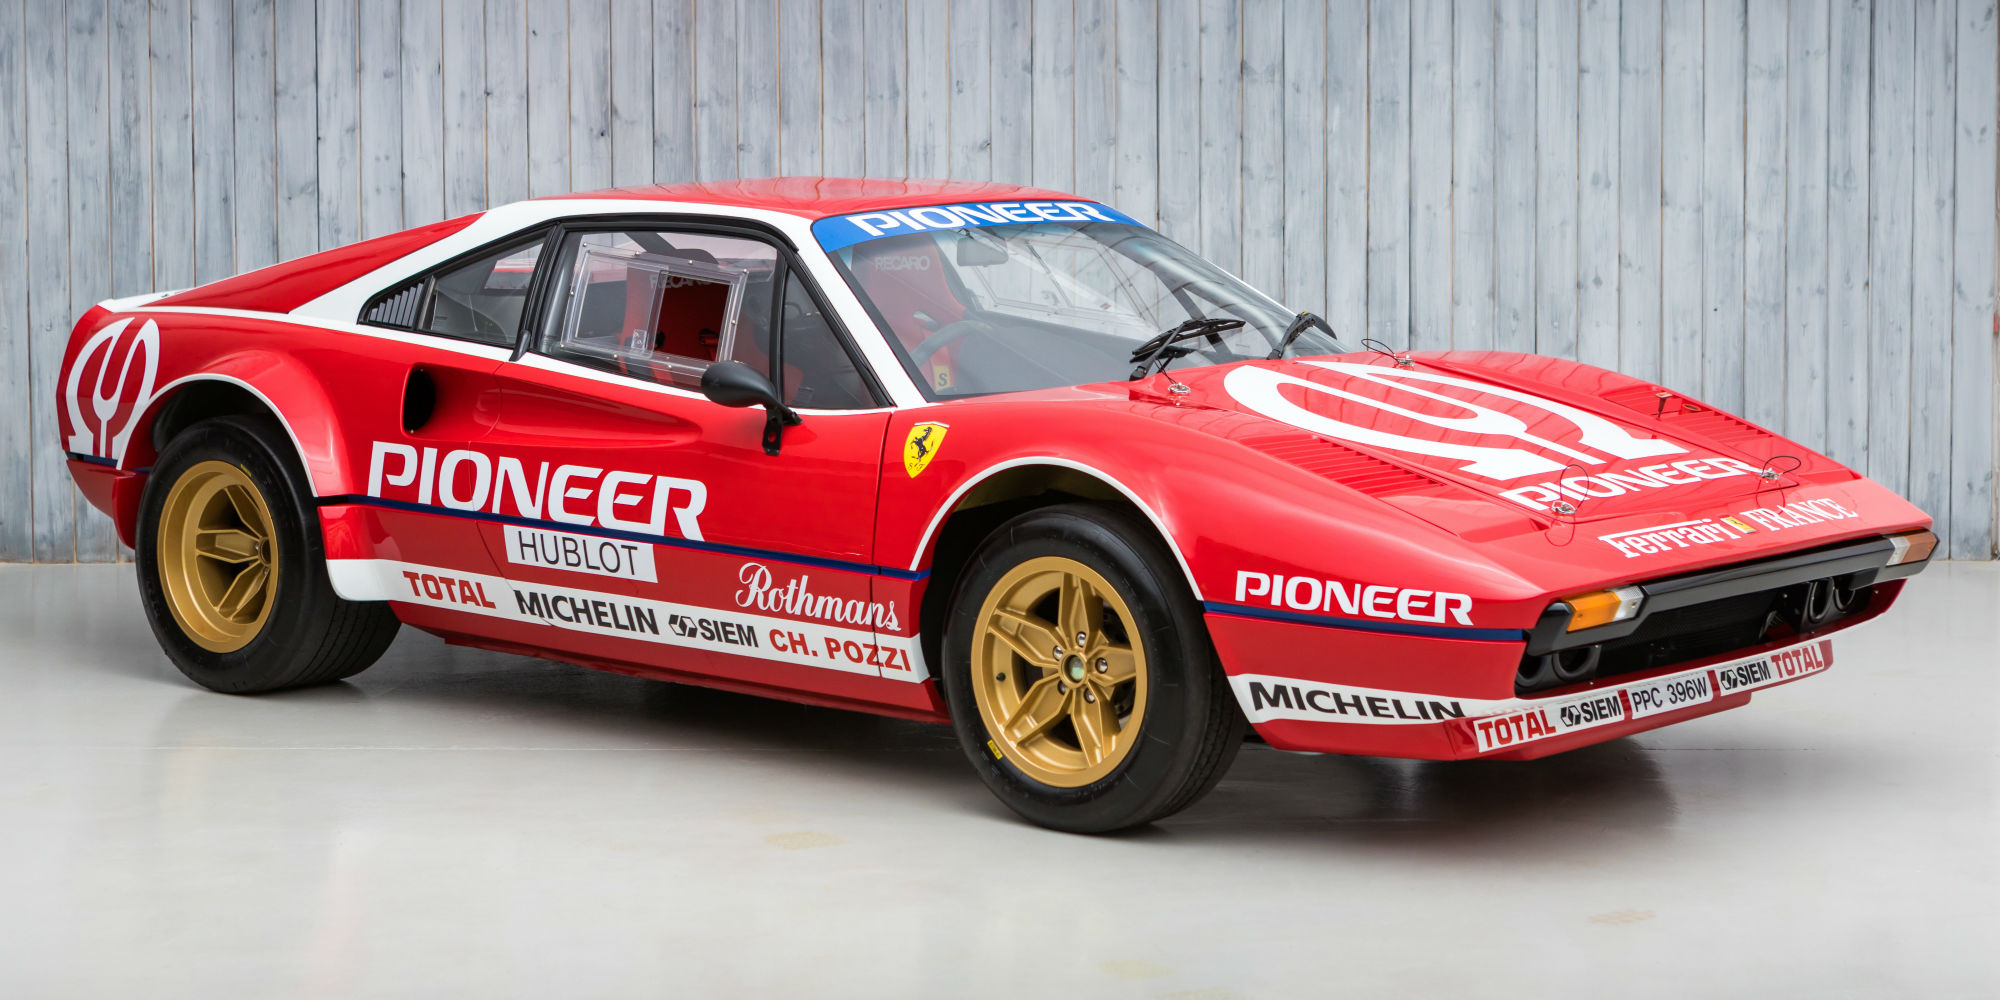 1981 Ferrari 308 GTB to FIA Group 4 Specification